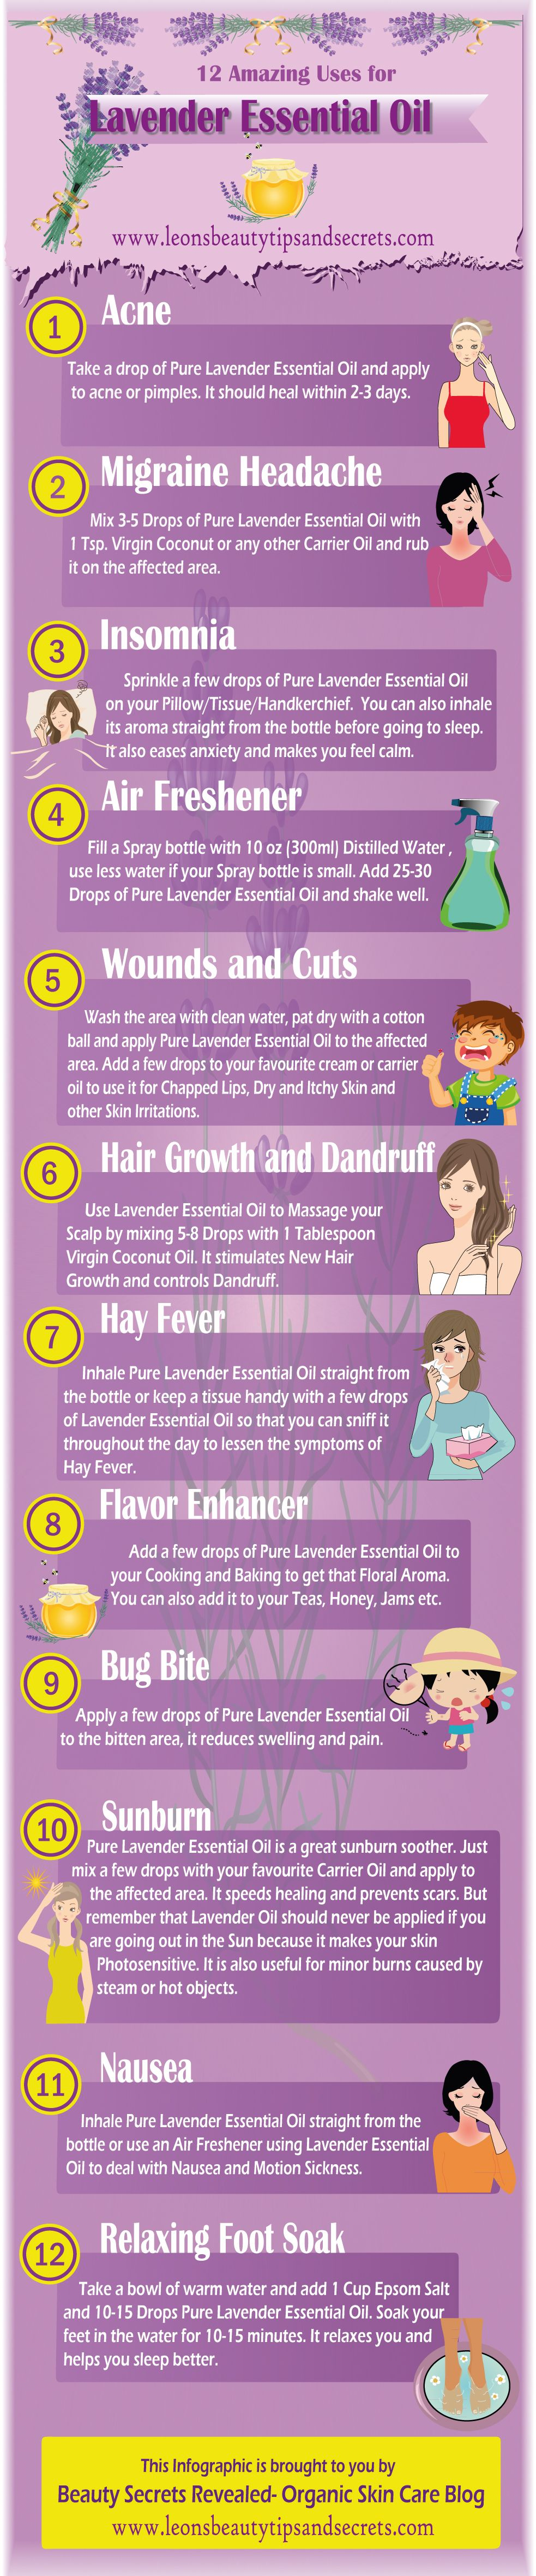 12 Great Reasons To Use Lavender Essential Oil Infographic